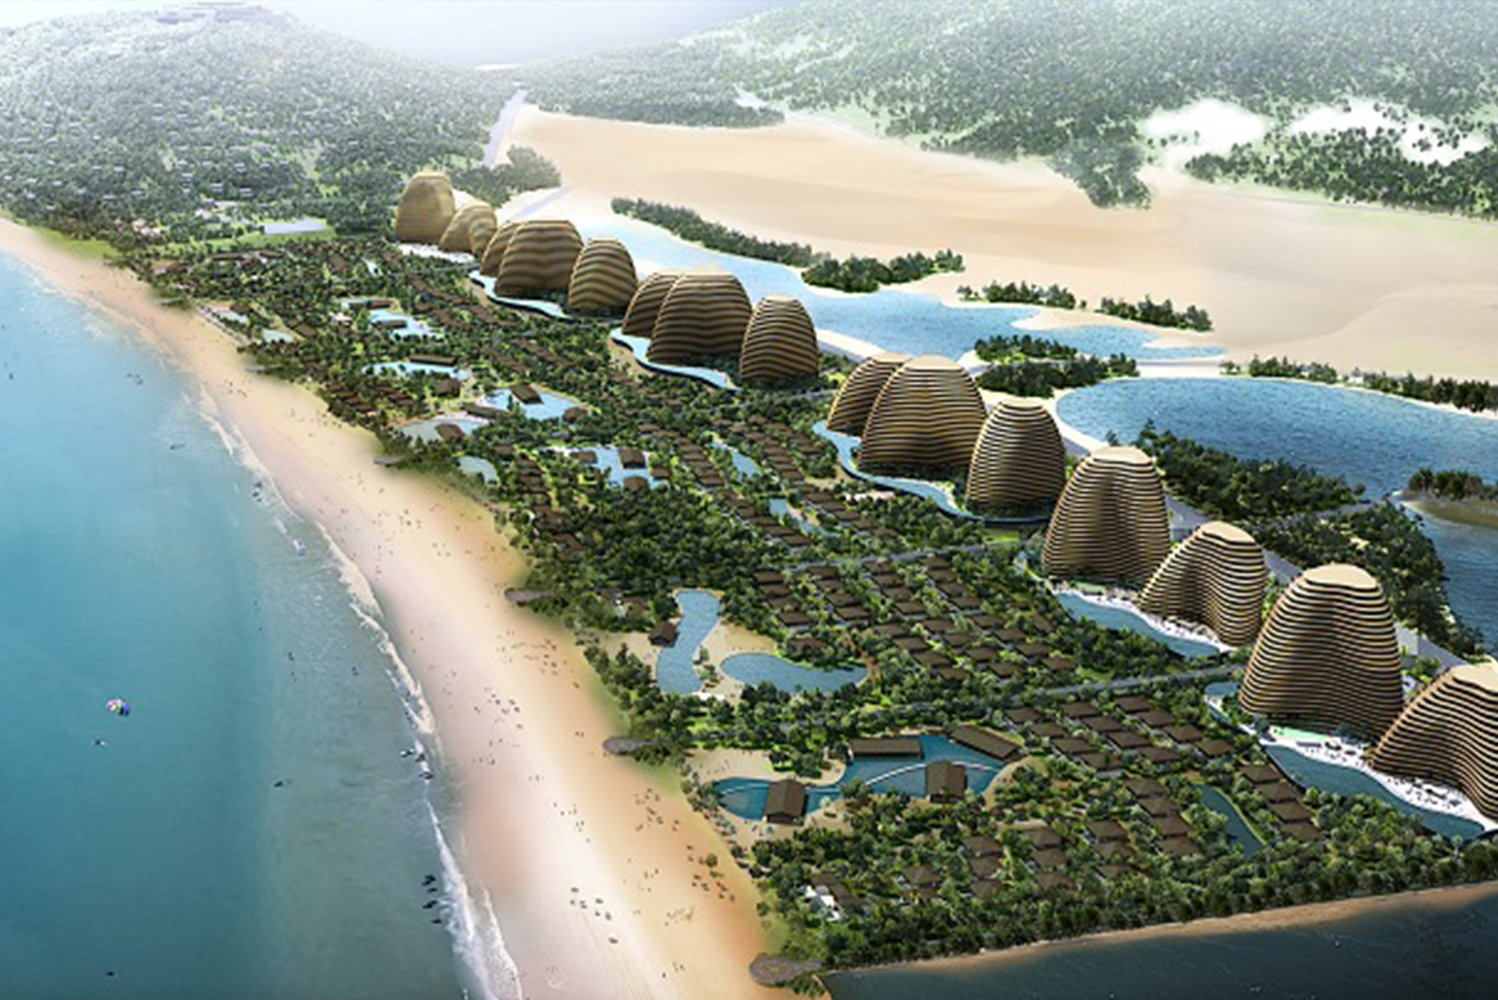 Chapman Taylor designed the masterplan for the 1,100,000 square meter (11,840,301 square foot) Mui Dinh eco-resort in Vietnam.